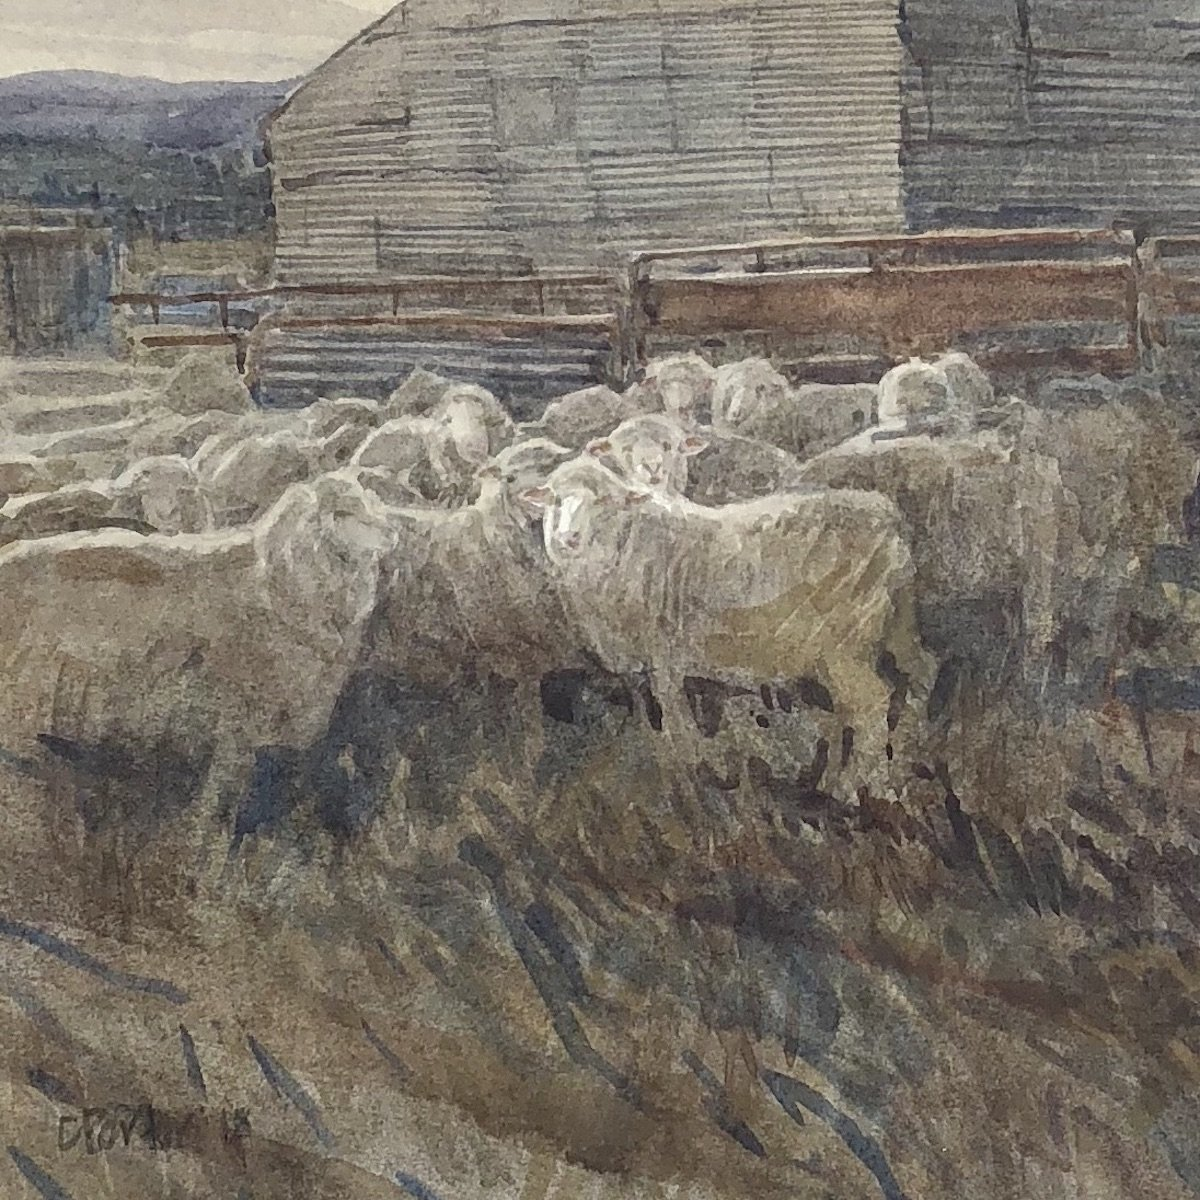 Watercolour painting by Christine Porter showing a mob of woolly ewes yarded up in some red metal years in front of a corrugated iron shed. It's dusk.